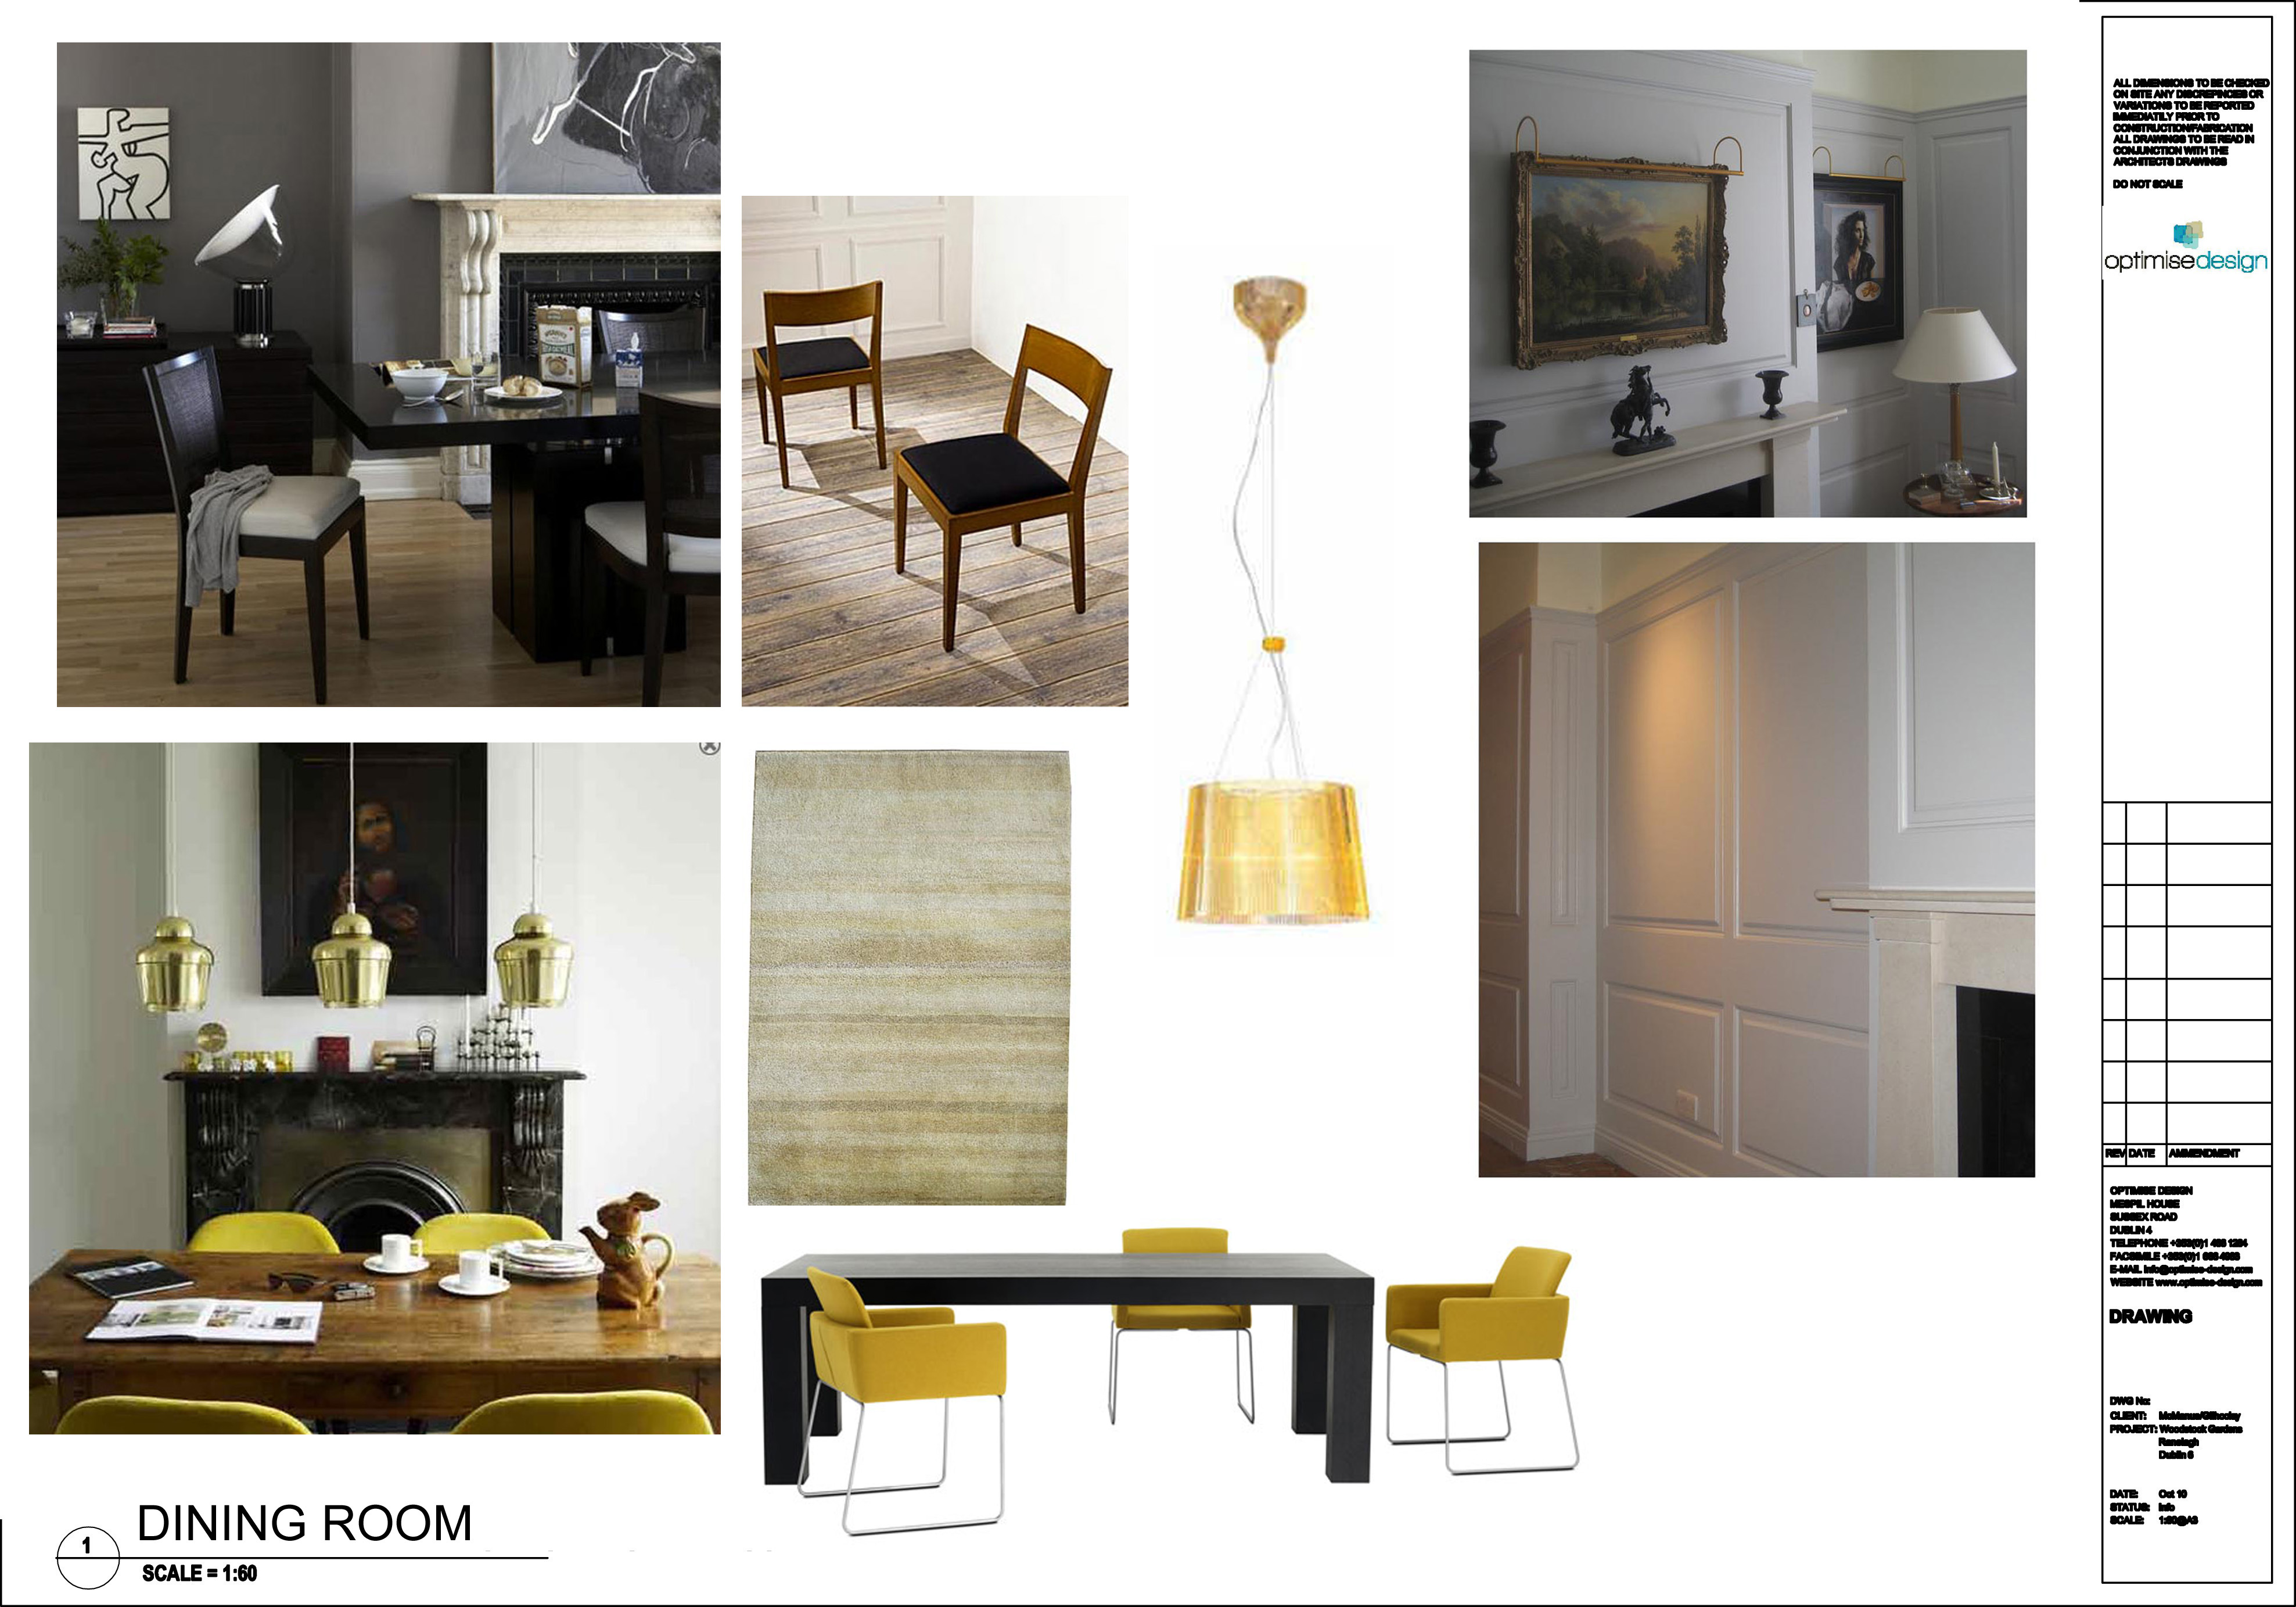 Dining Room Ideas Blog Dining Room Moodboard The Optimise Design Blog